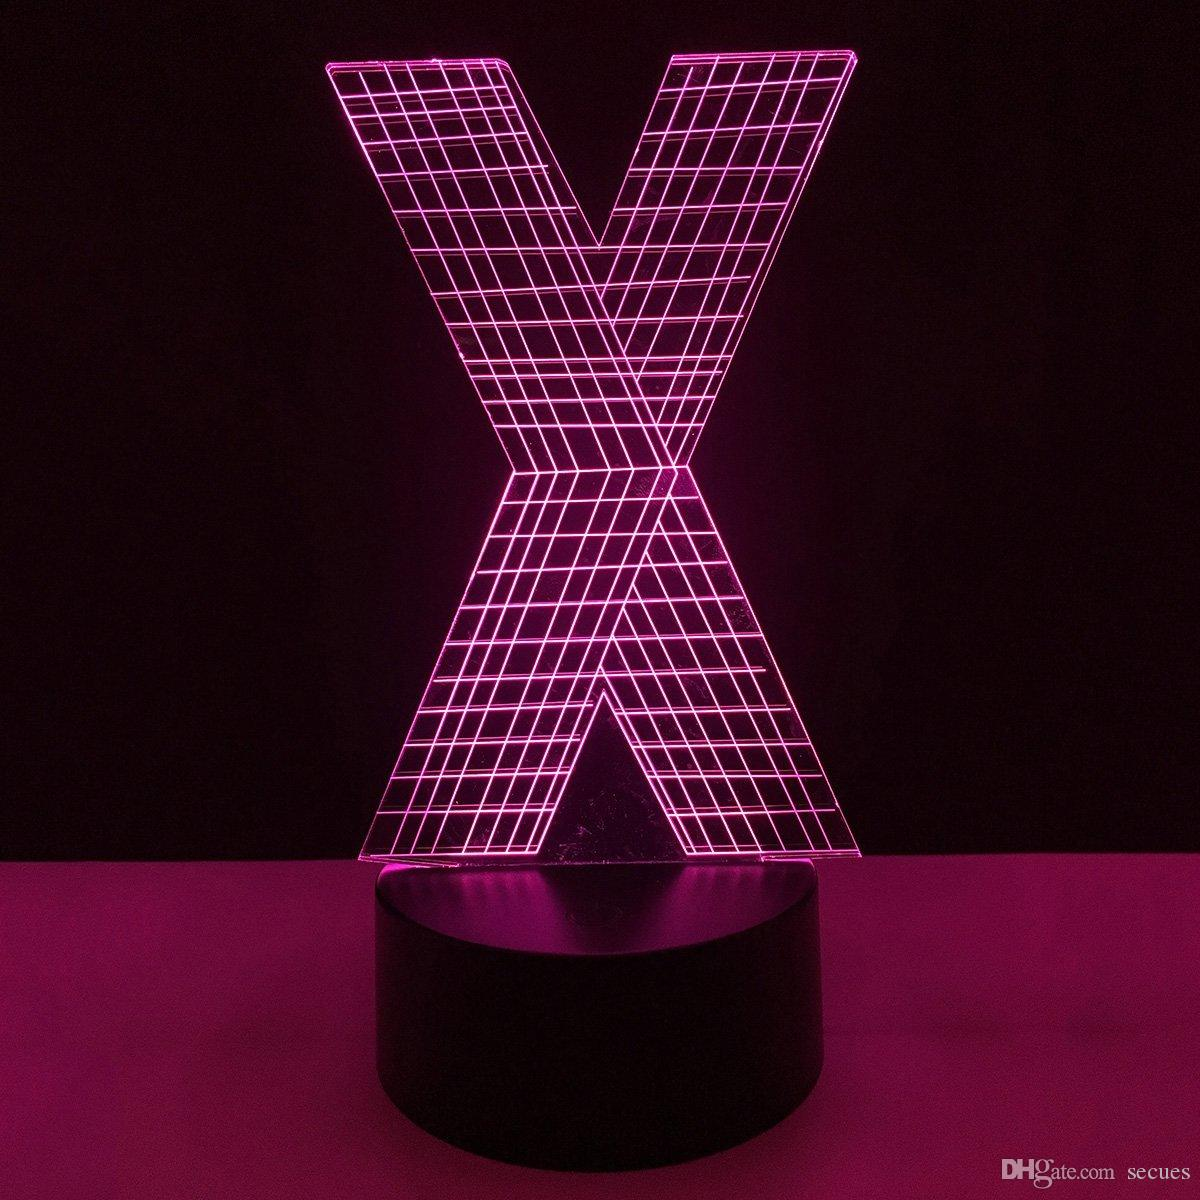 New X Letter Shape 3D Illusion LED Lamp Letters Decoration Lamp DC 5V USB Powered 5th Battery Wholesale Free Shipping